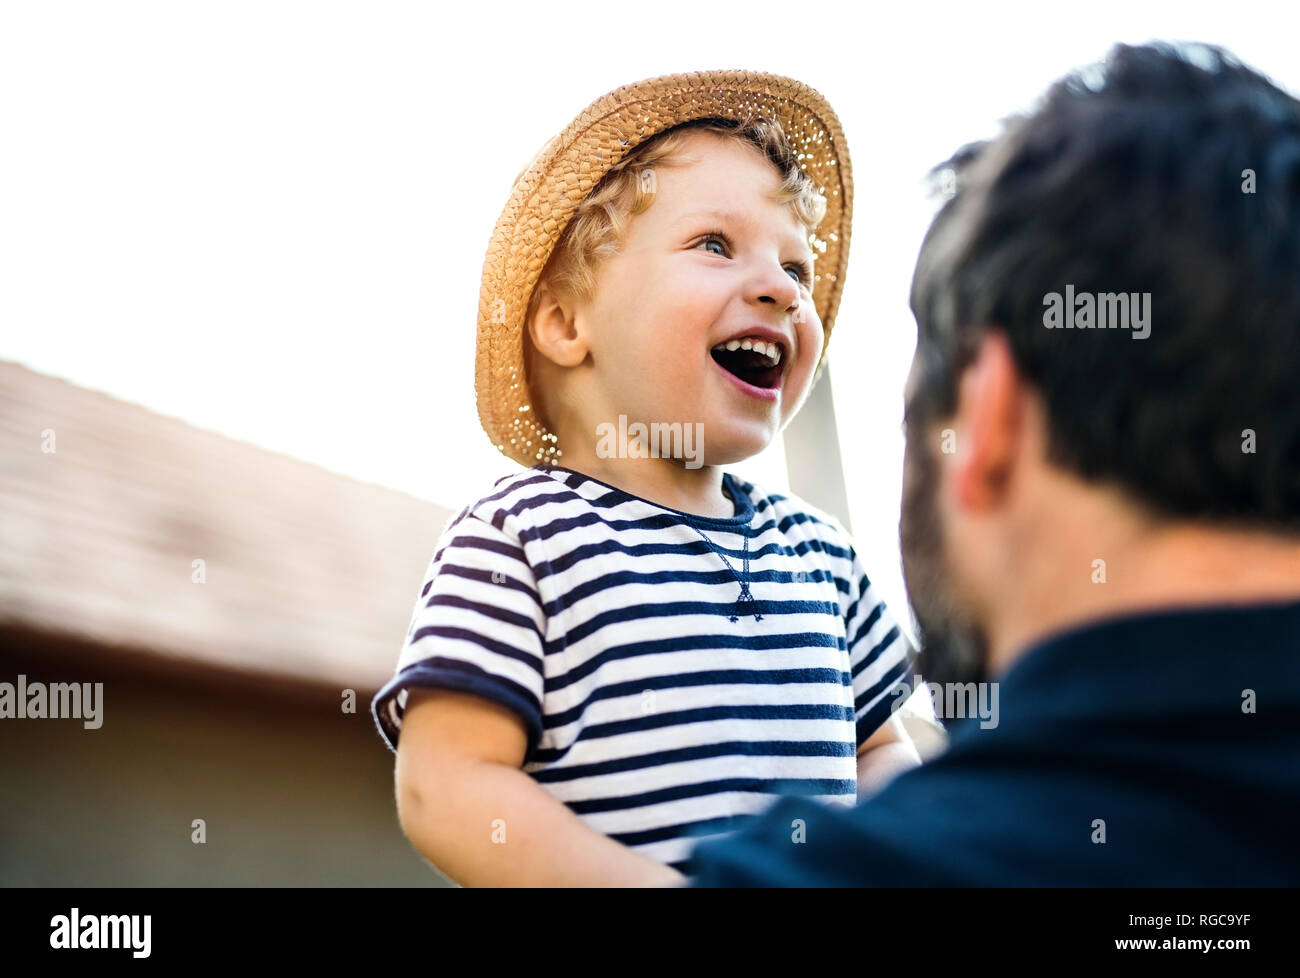 Portrait of laughing toddler sur les bras de son père Photo Stock